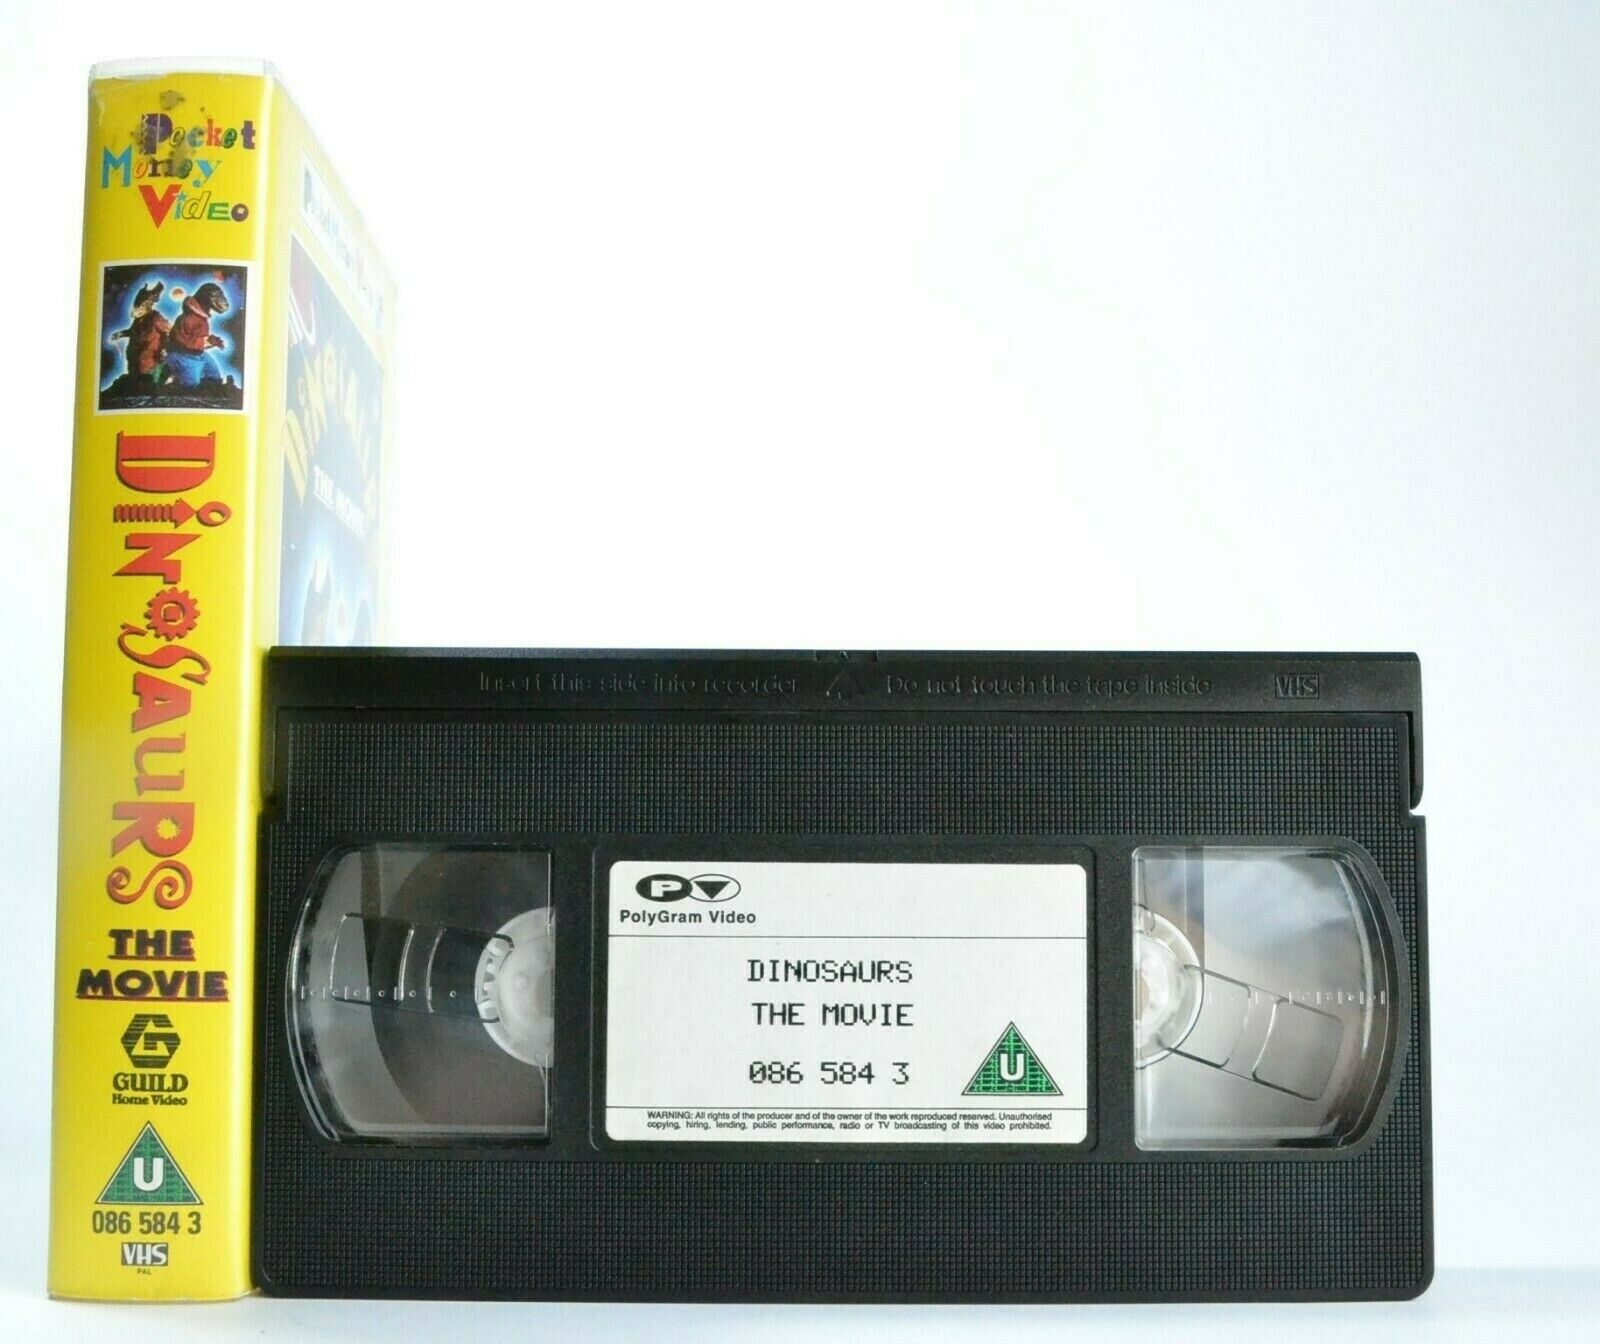 Children's & Family, Dinosaurs, Family, Film, Money, Movie, Pal, The, U, United Kingdom, VHS